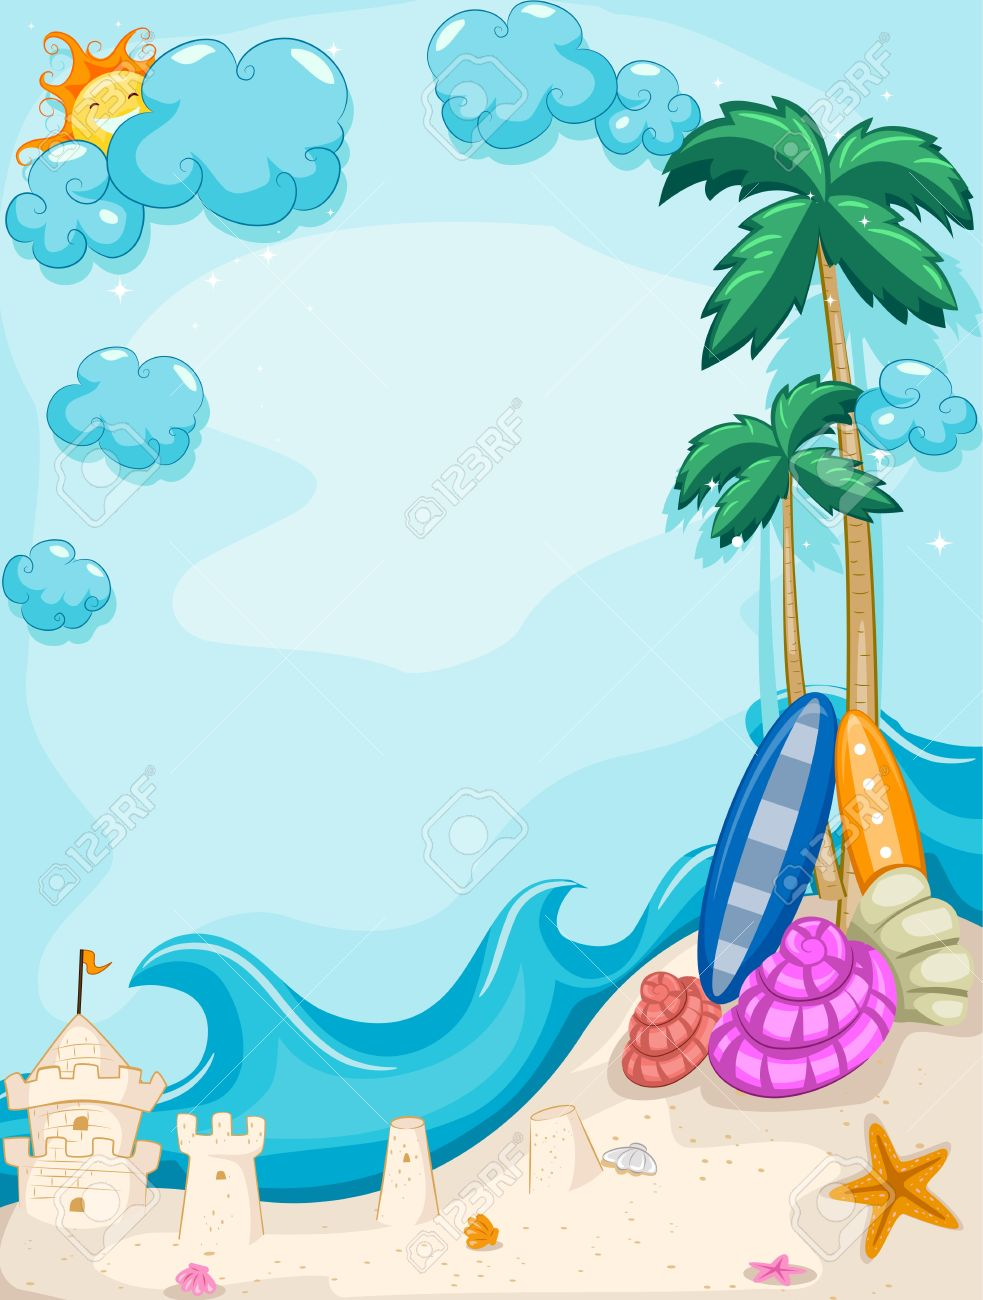 free beach clipart backgrounds - clipground